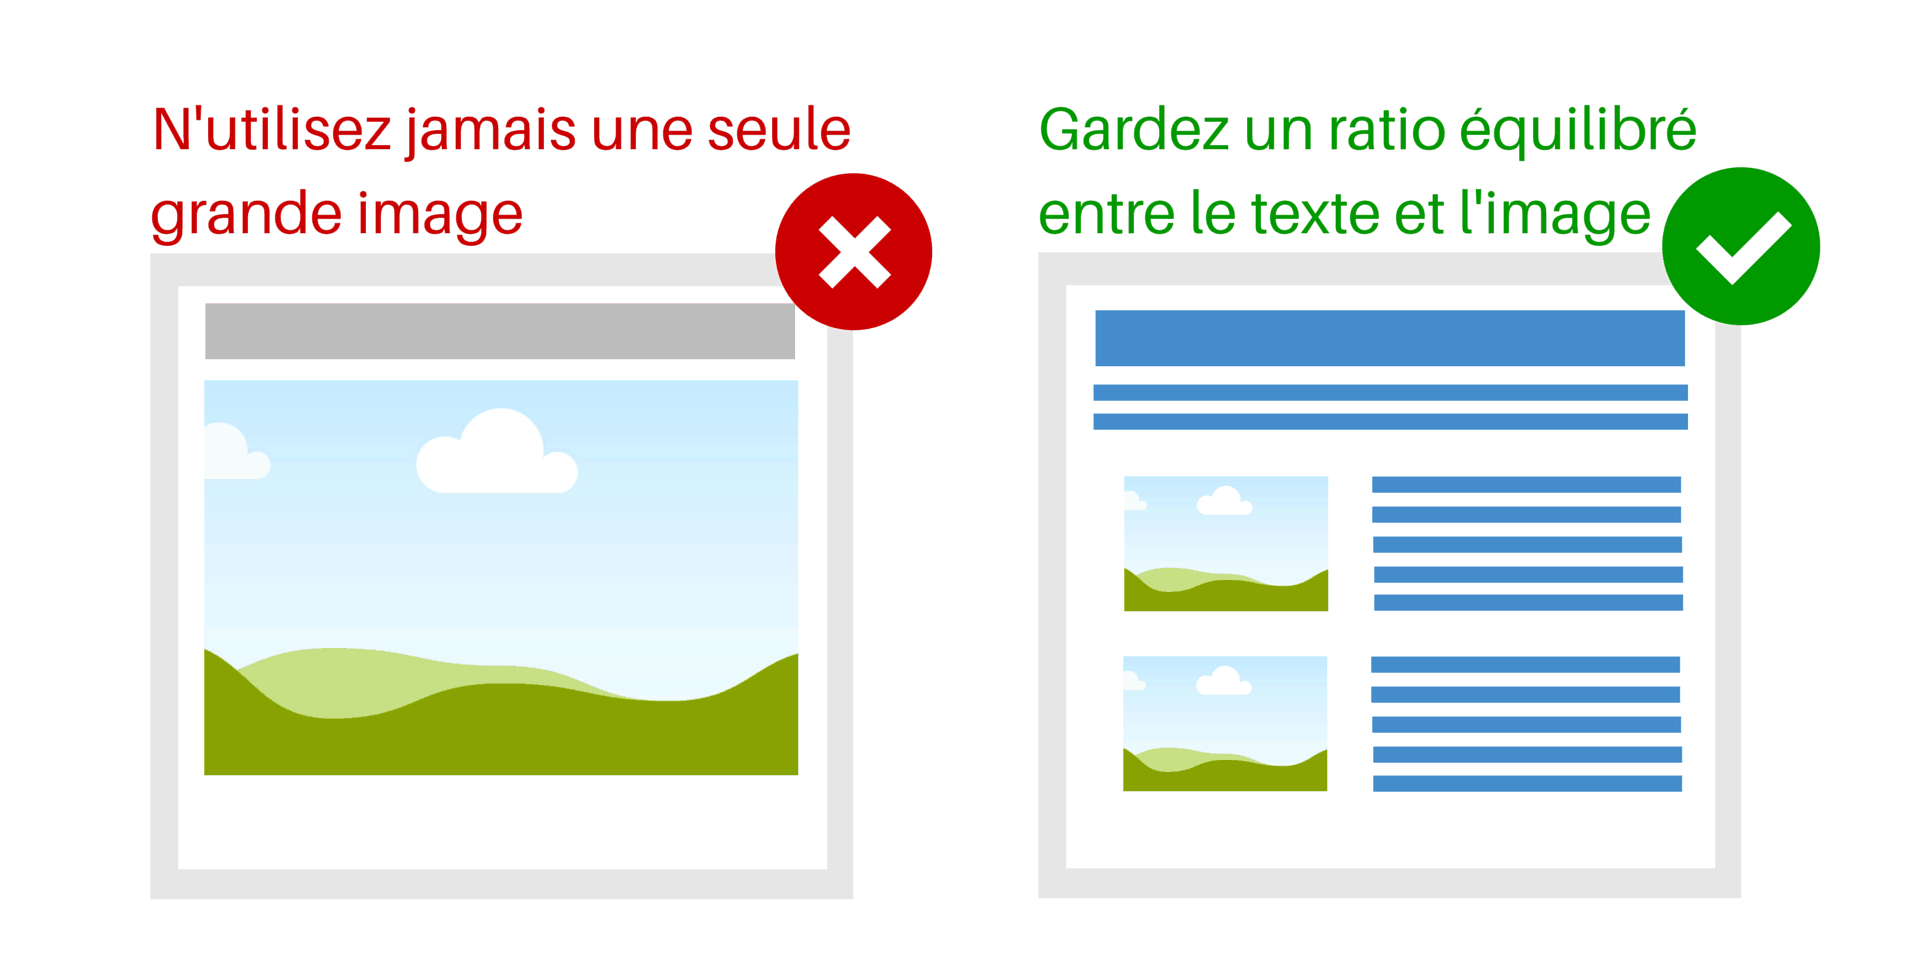 emailing text image ratio